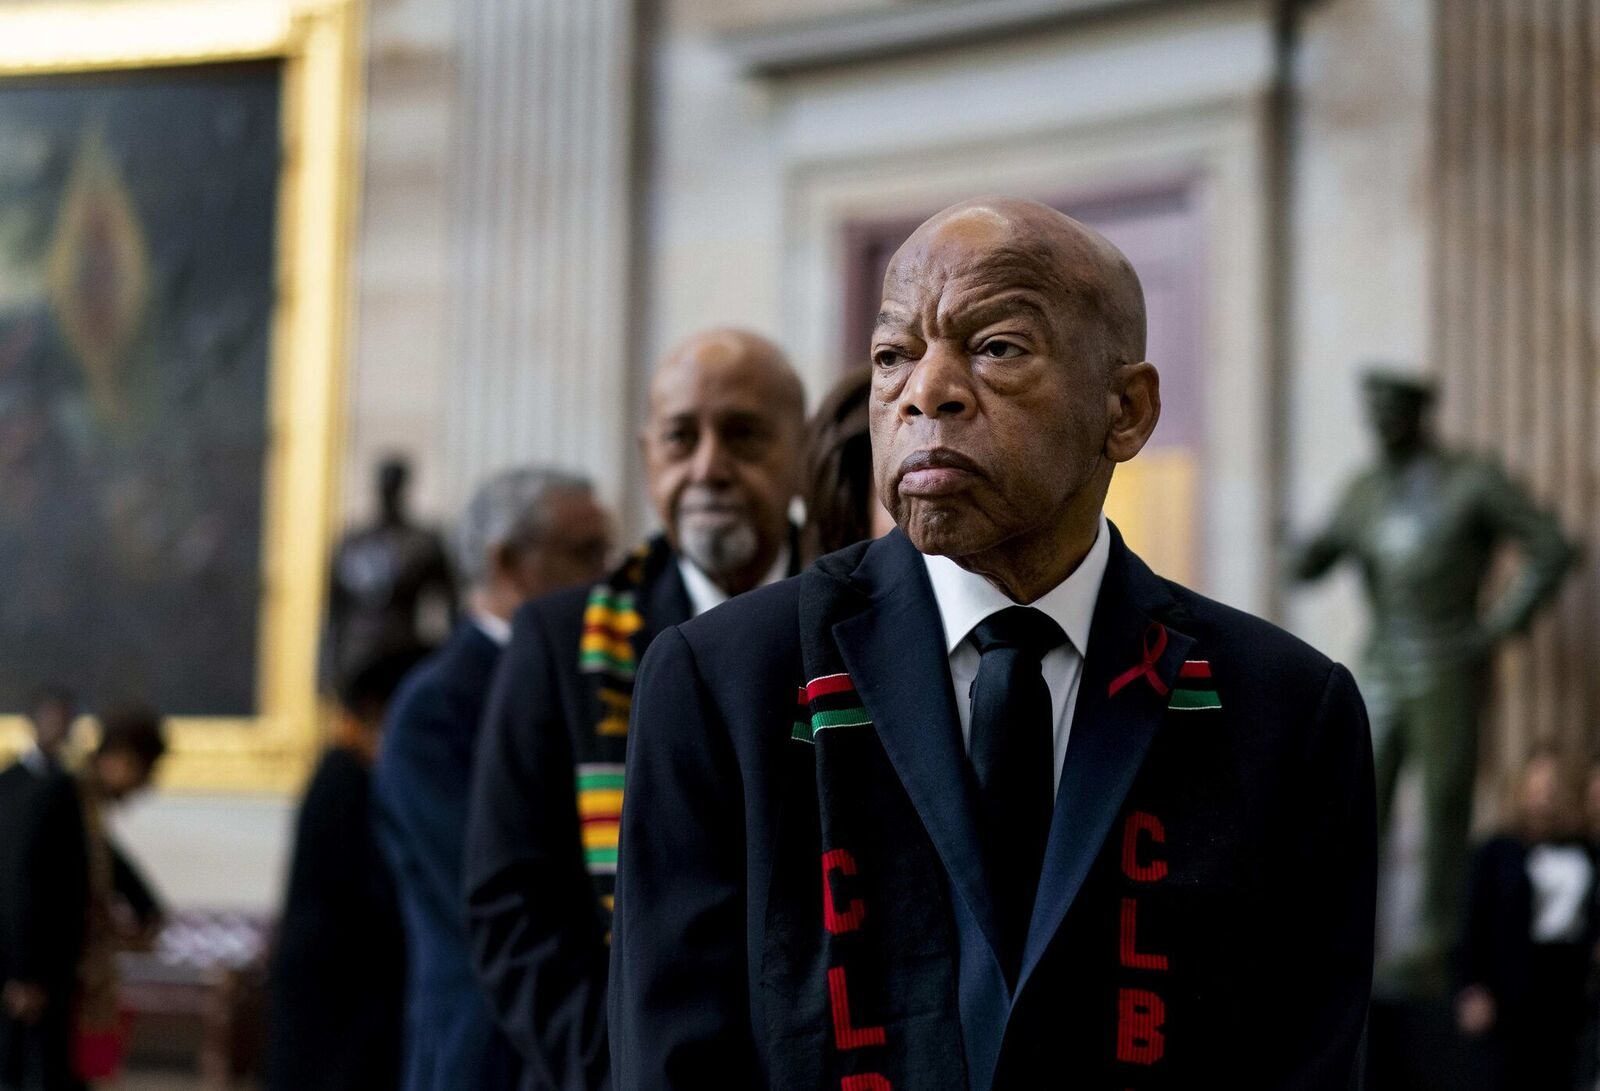 Rep. John Lewis prepares to pay his respects to Representative Elijah Cummings during a memorial ceremony on Capitol Hill in Washington, DC. | Source: Getty Images